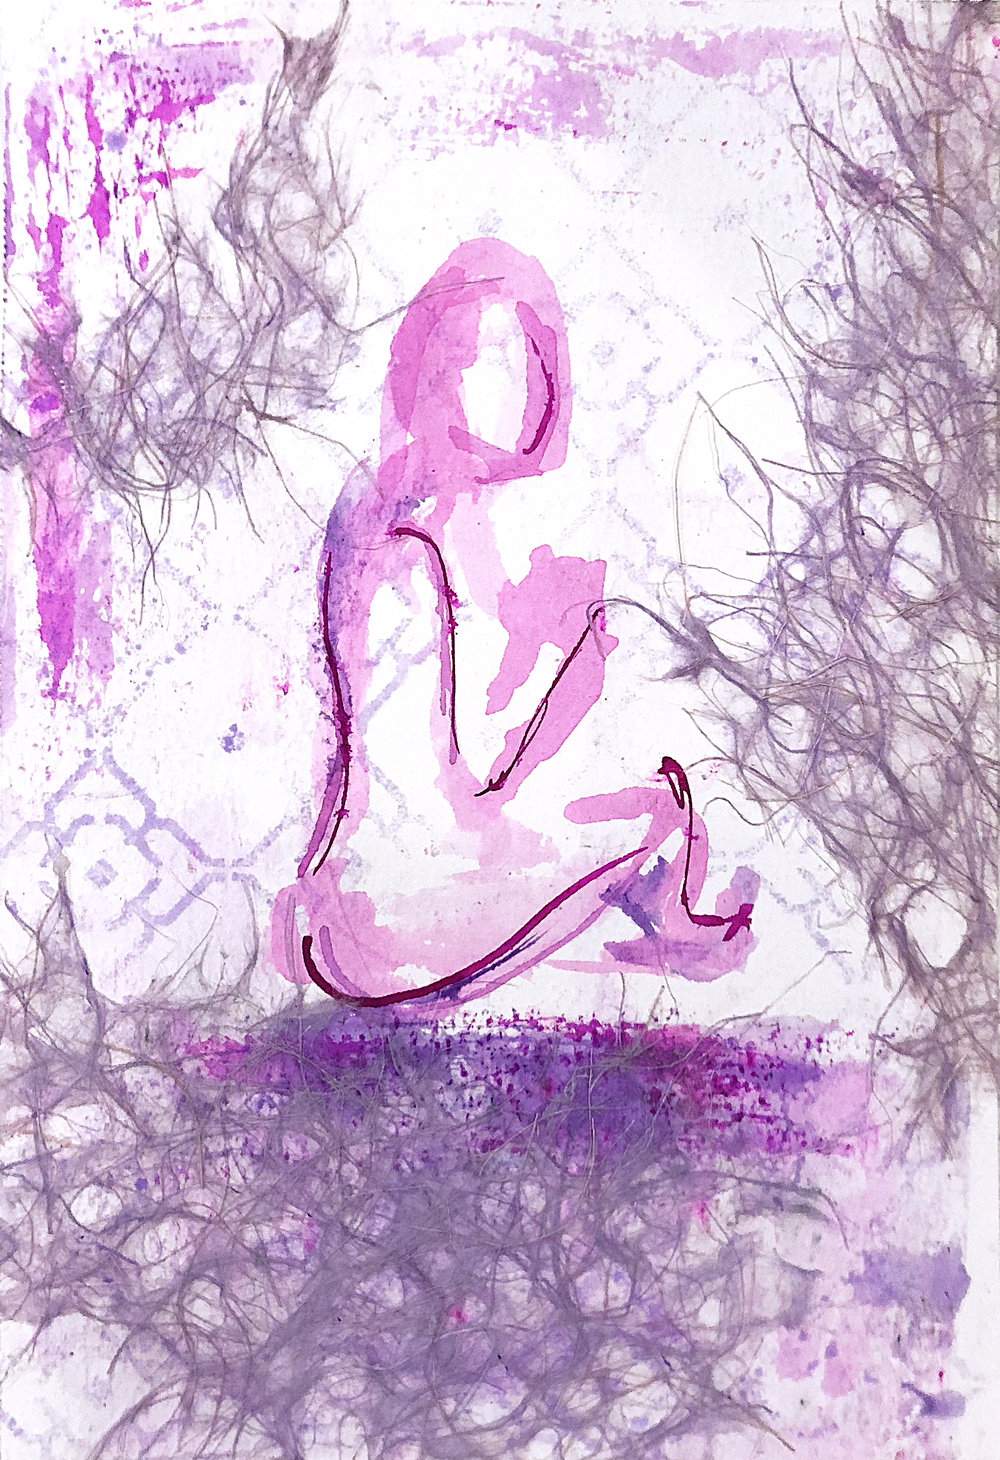 Watercolor on paper, painted with palette knives, yoga pose sukhasana.